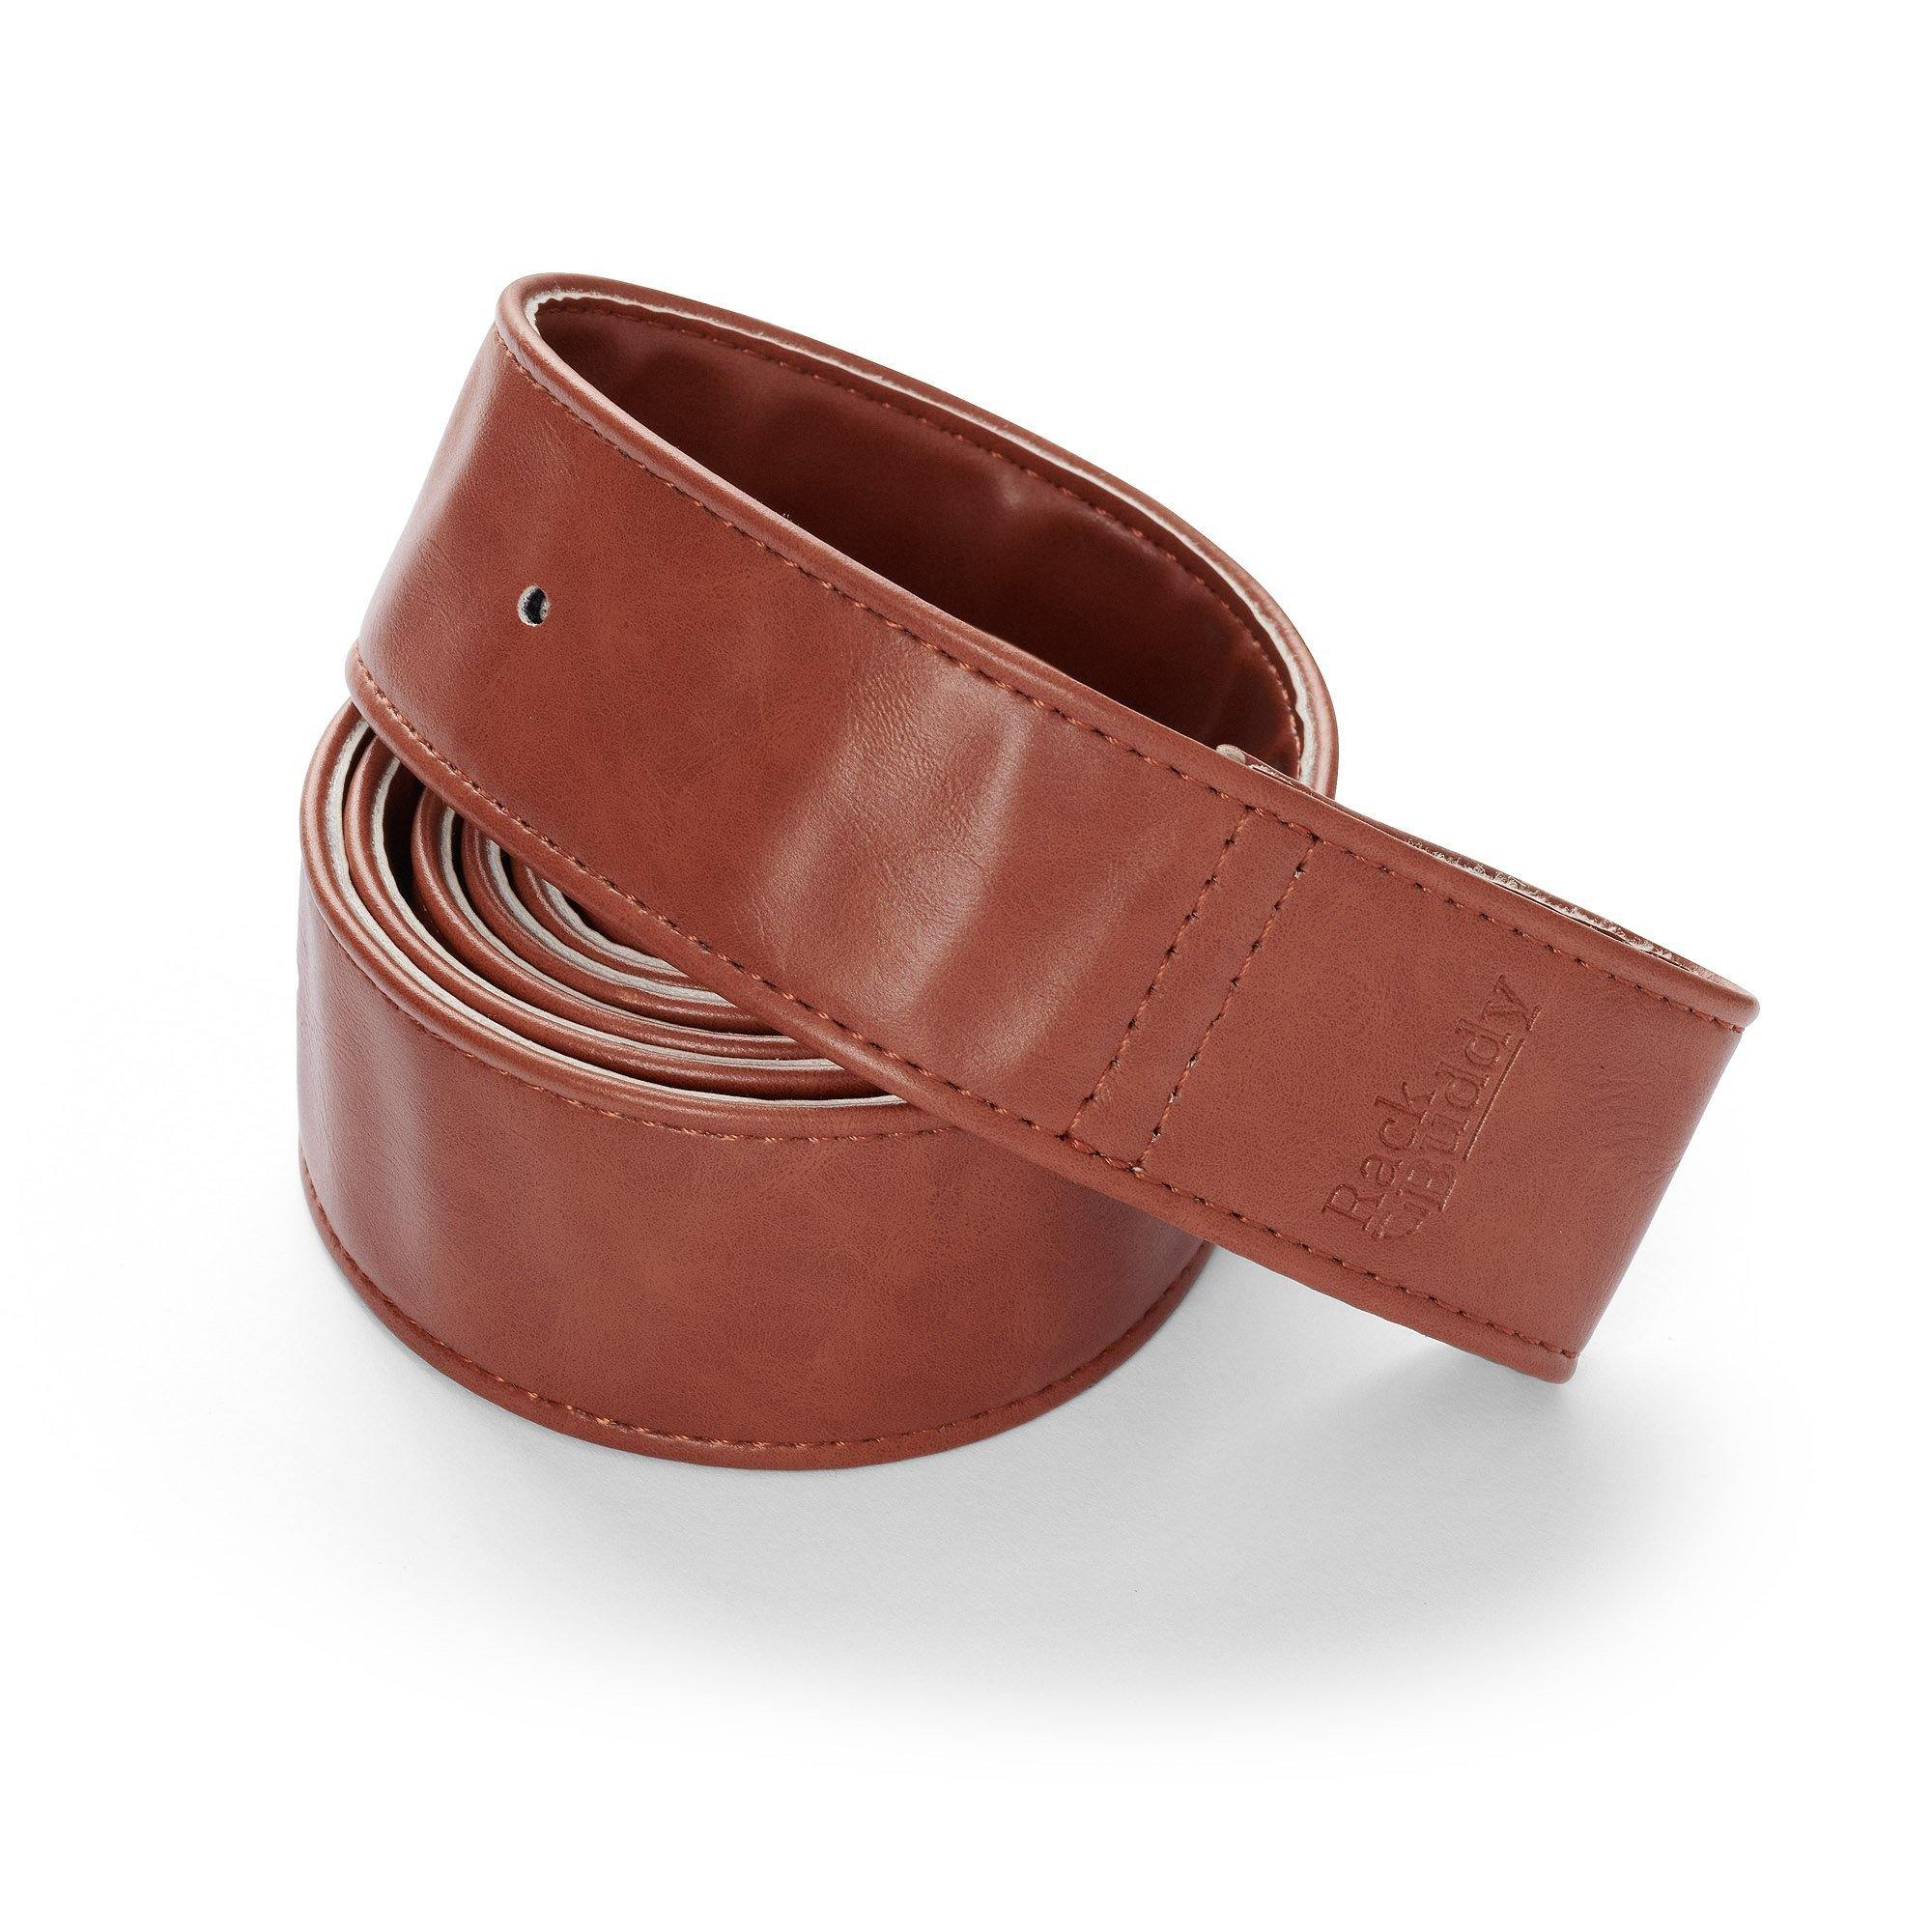 RackBuddy Leatherish - Light brown PU-leather straps